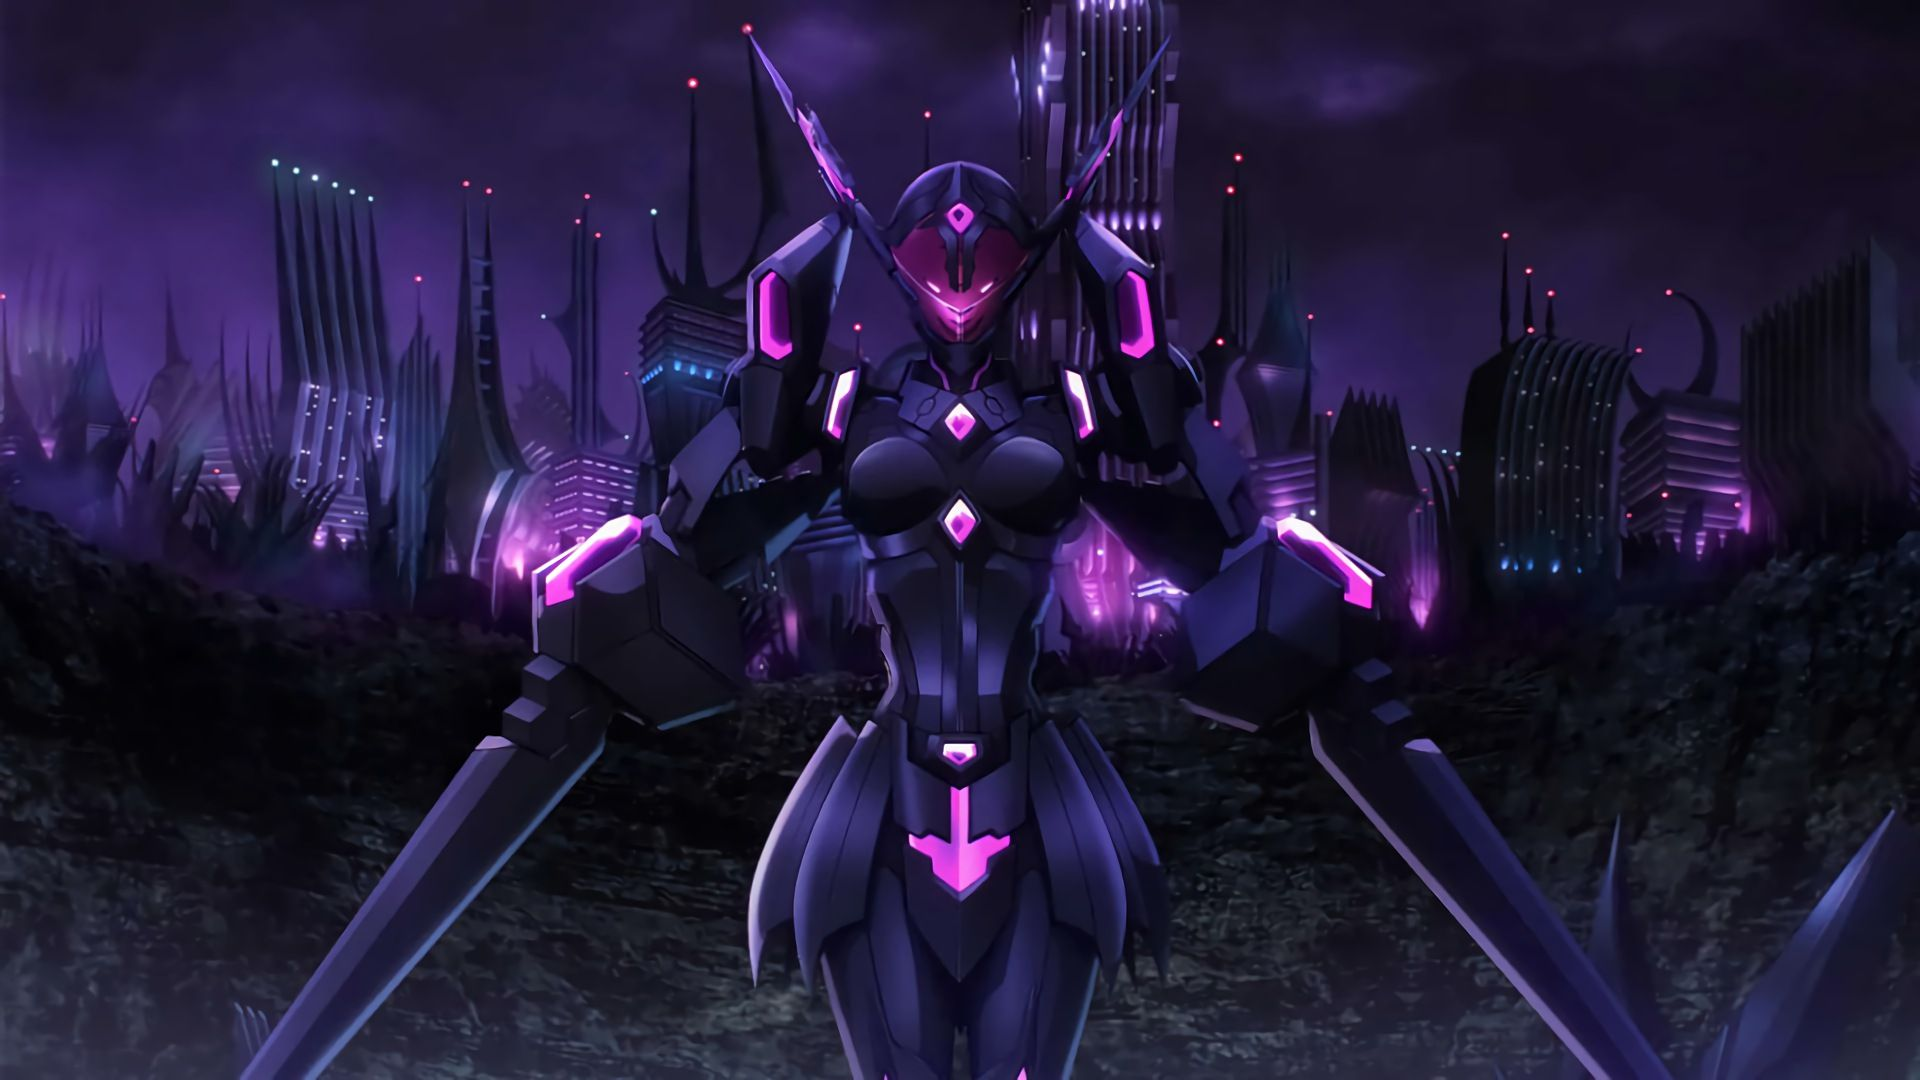 Accel World Wallpapers Top Free Accel World Backgrounds